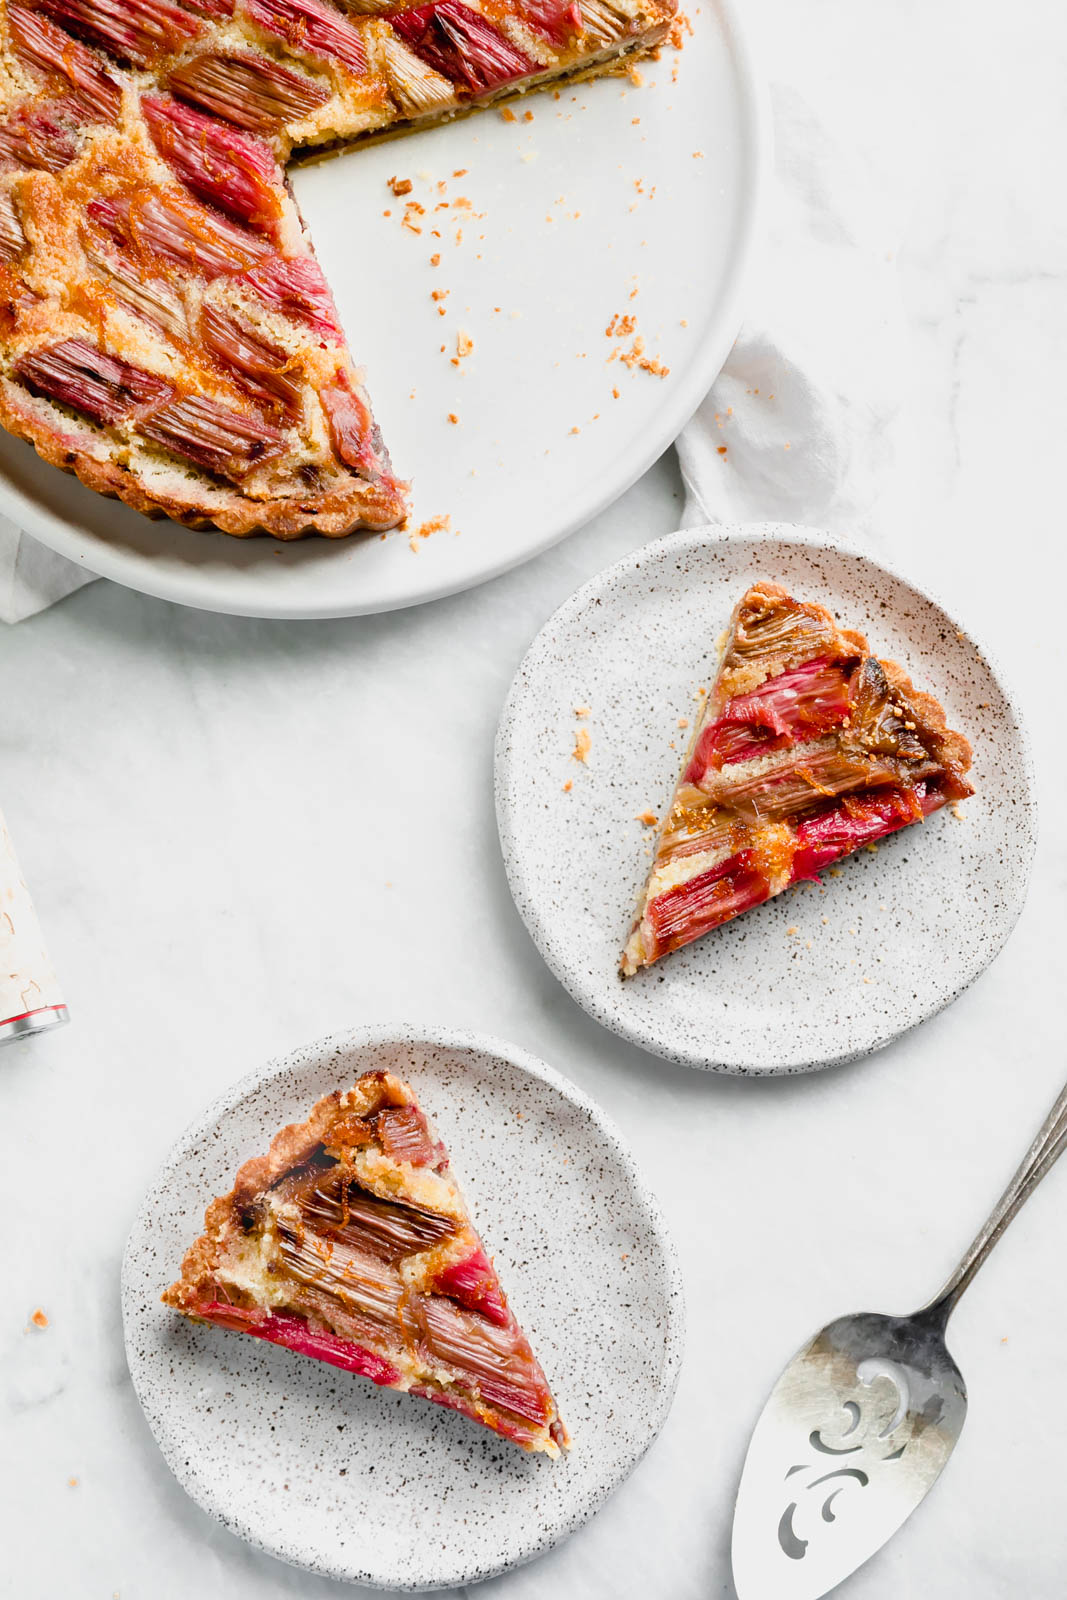 Looking for some crowd pleasing easter brunch recipes? With Easter just around the corner we've rounded up all the brunch recipes you'll need.